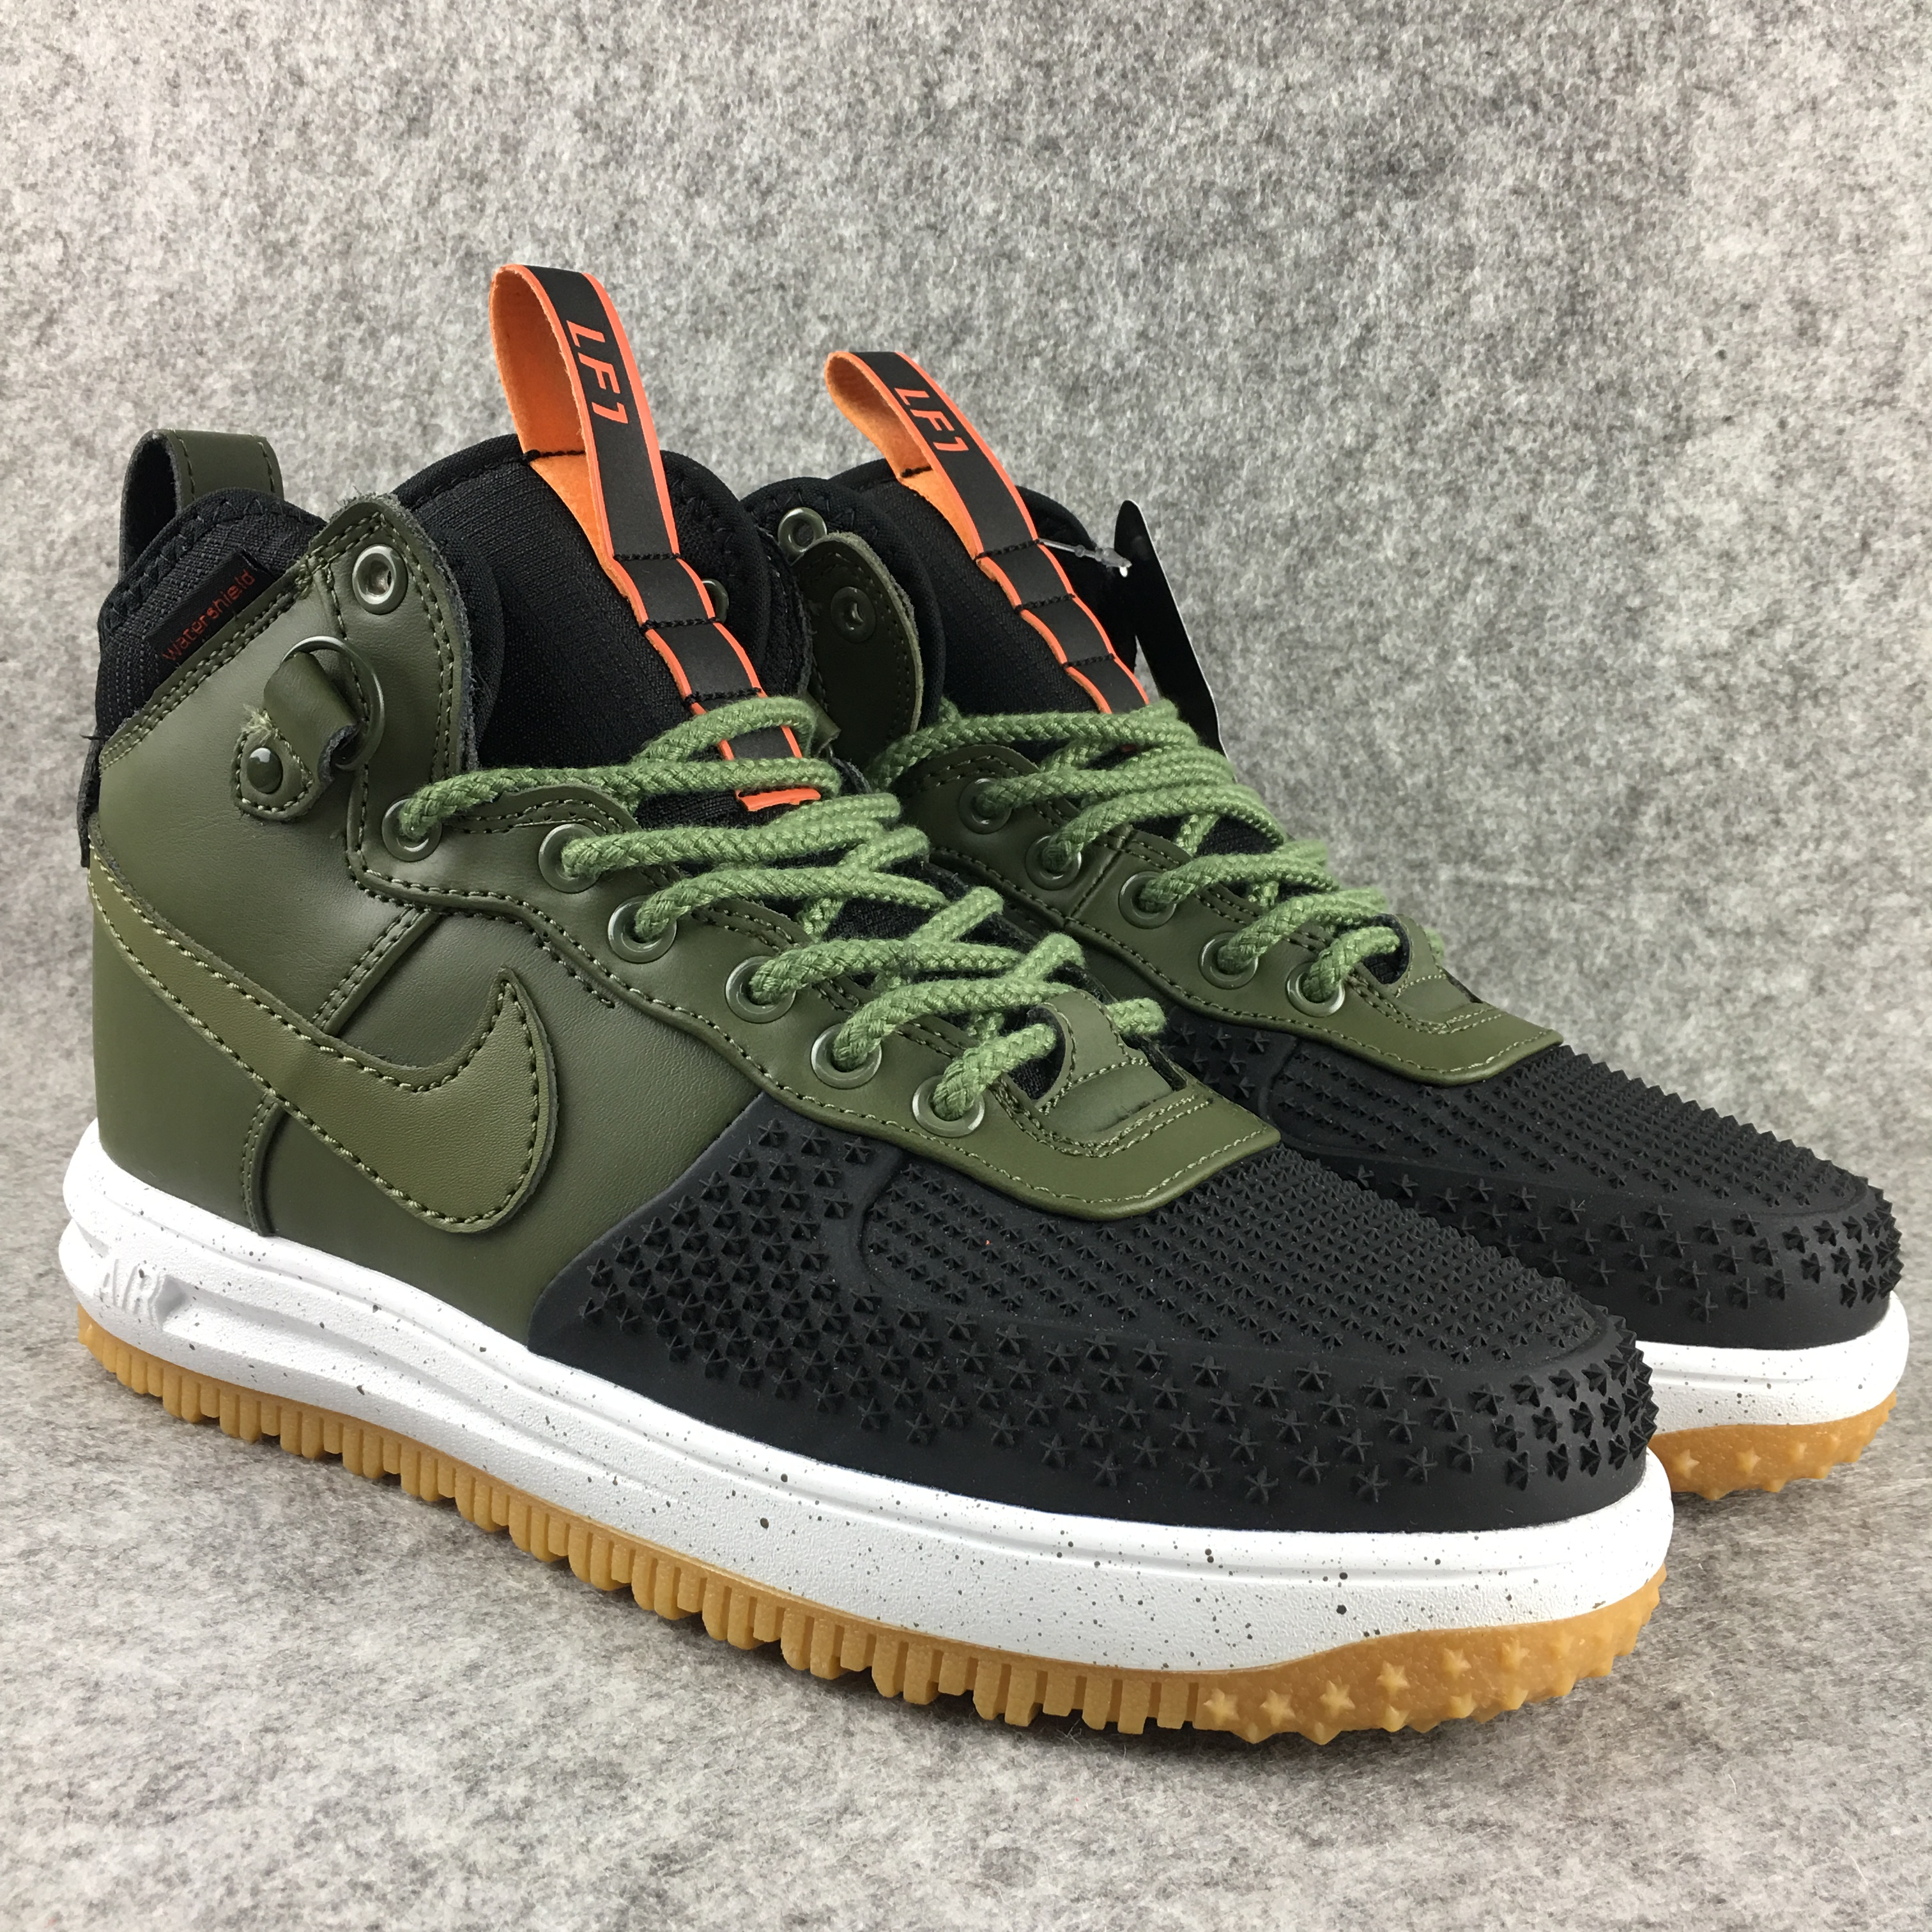 New Nike Lunar Force 1 High Green Black